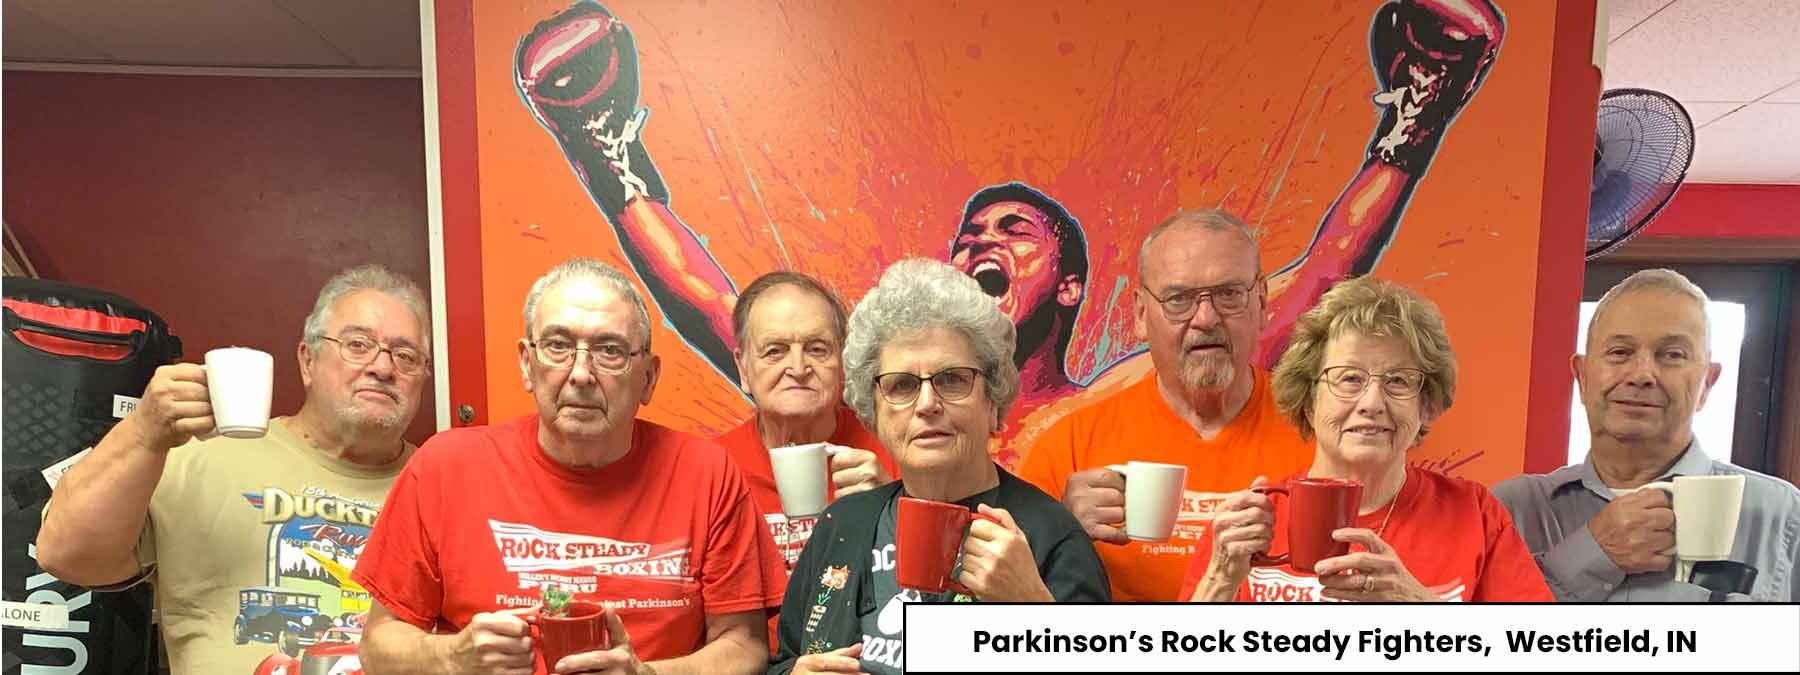 Best Cup for Parkinson's | Parkinson's Rock Steady Fighters